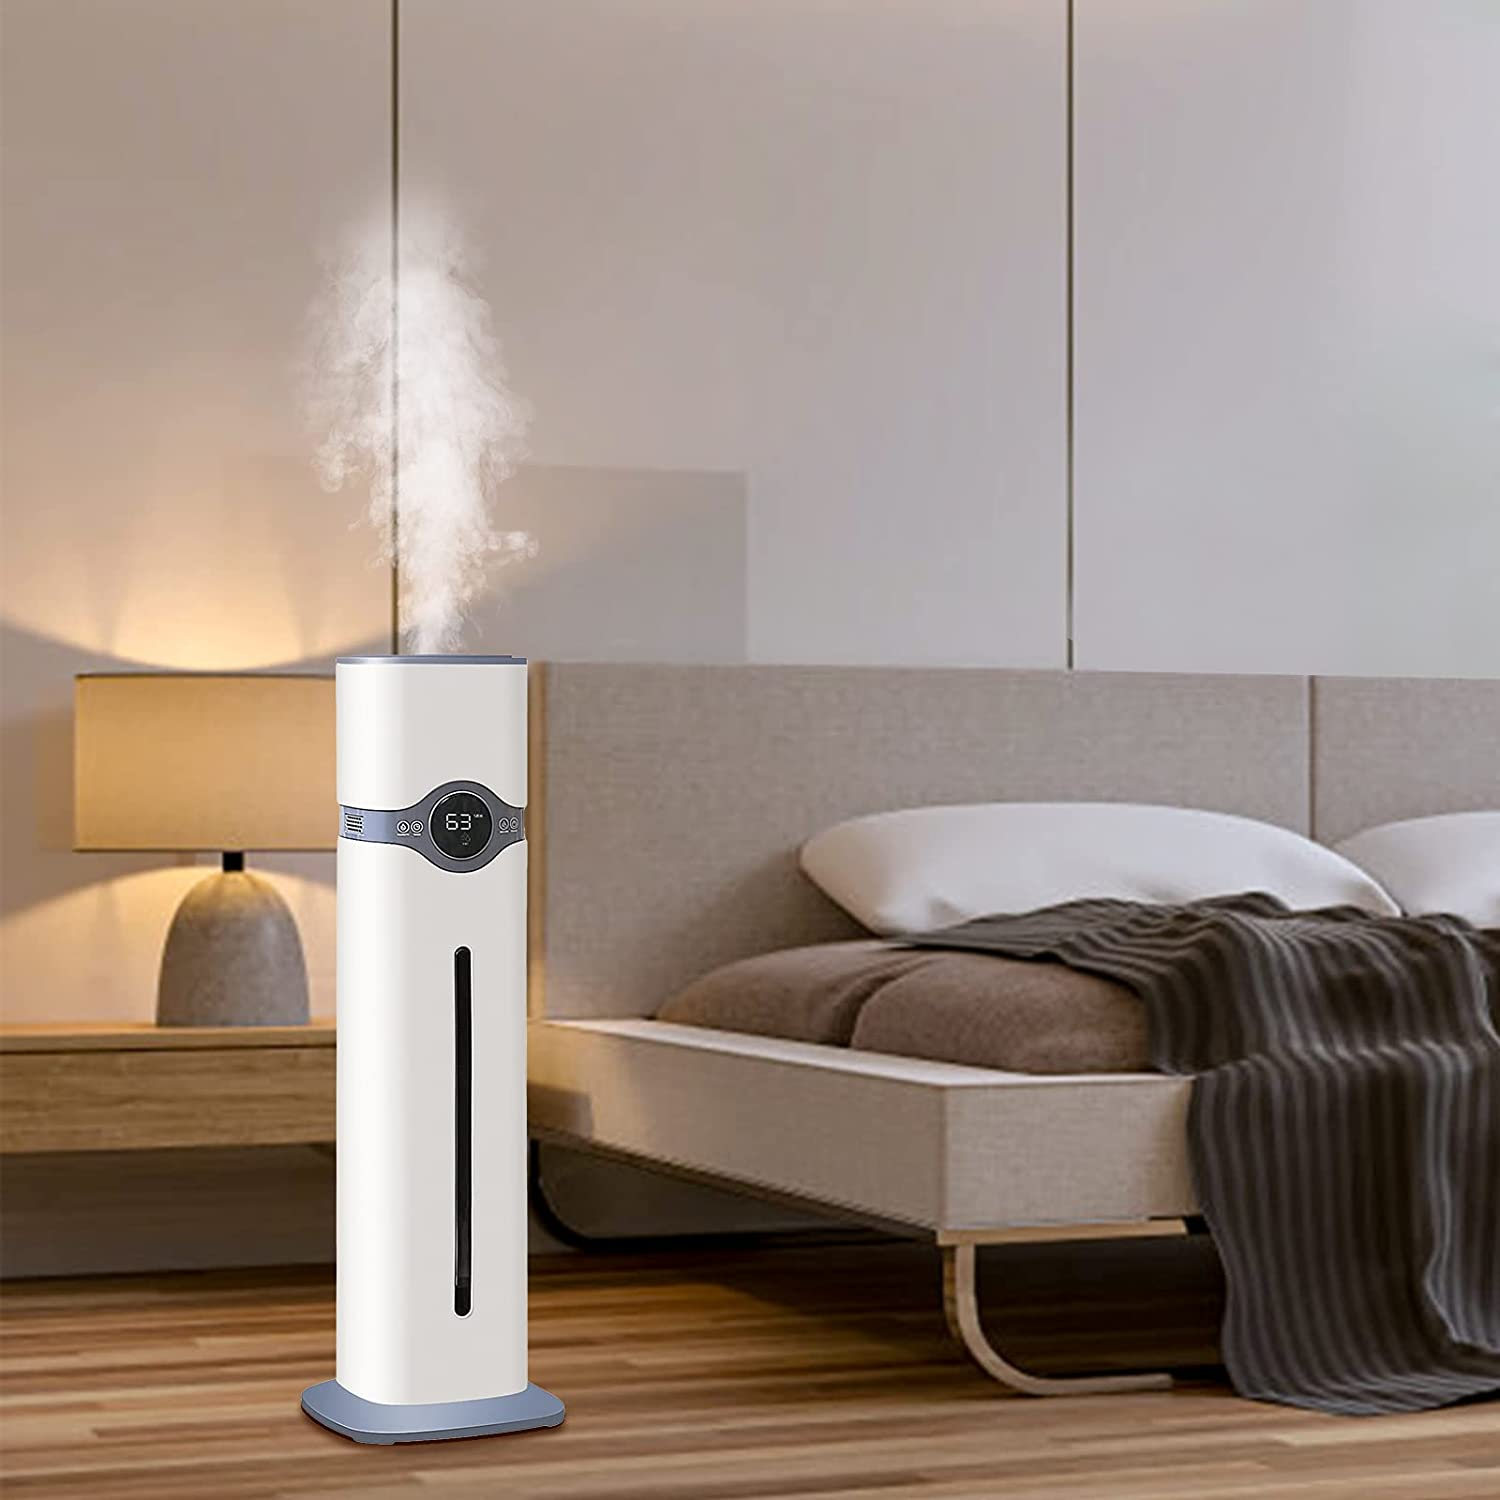 Ultrasonic Humidifiers for Home, Large Room, Top Fill Humidifiers with Humidistat, Quiet Cool Mist Humidifiers of Large Capacity(9L/2.4Gal) for 36H Humidifying, 300ML/H Max Mist Output